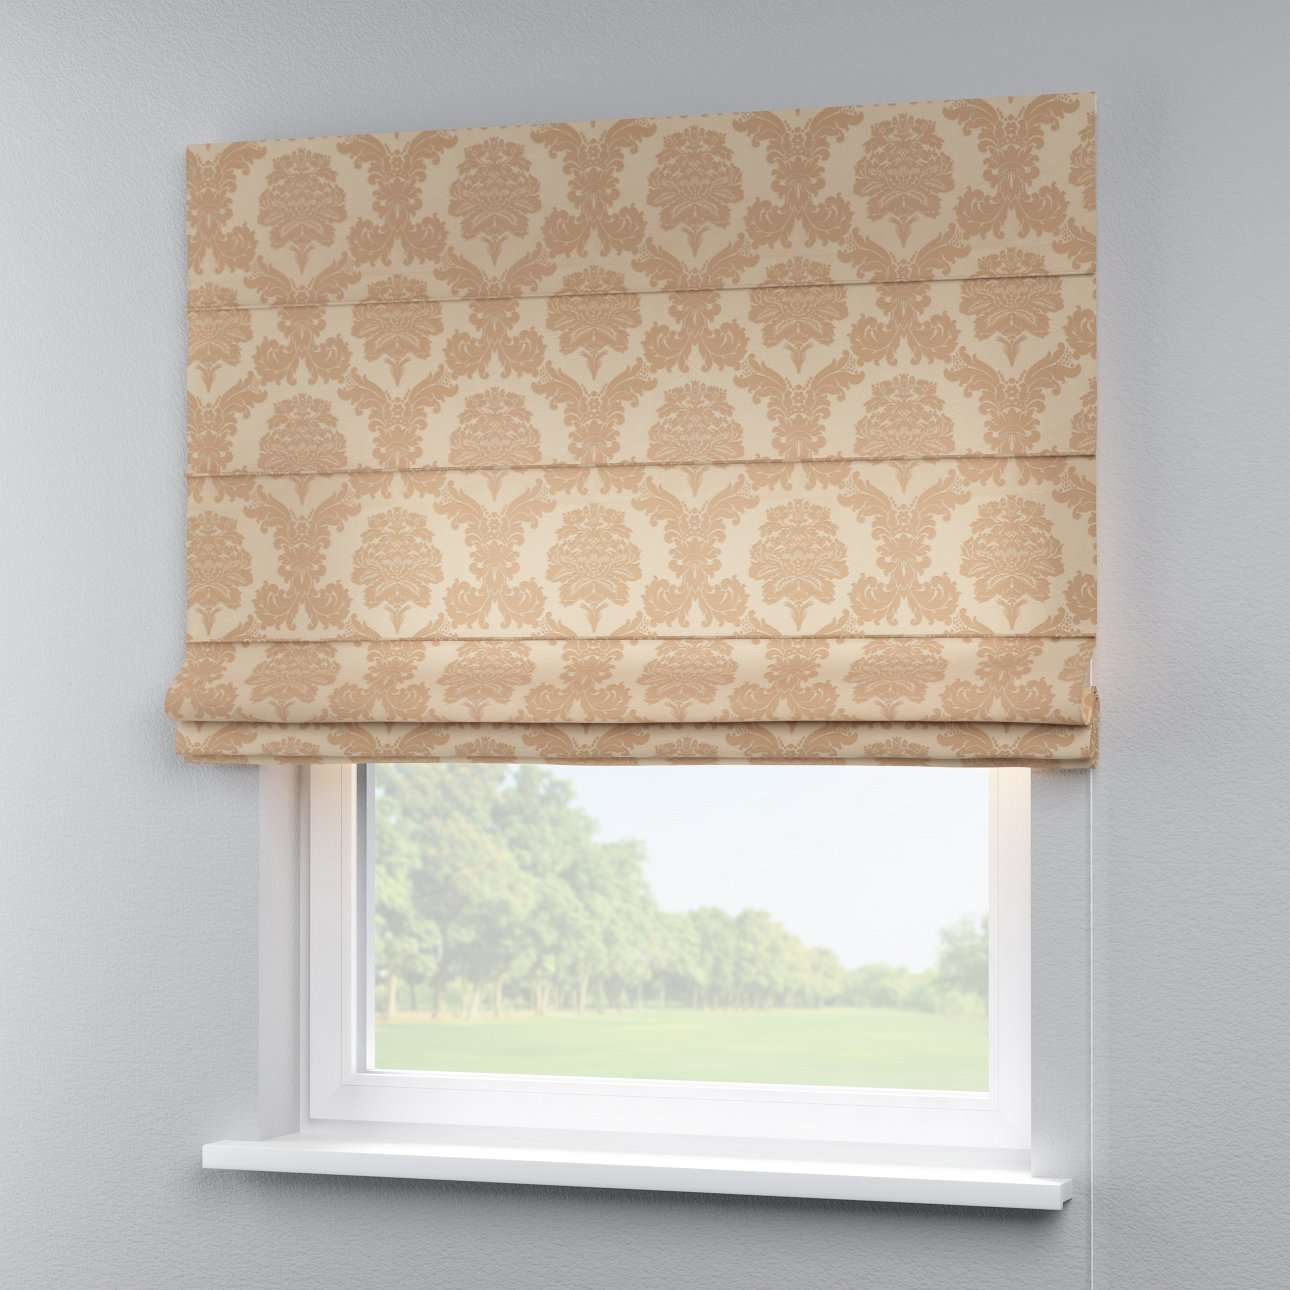 Capri roman blind in collection Damasco, fabric: 613-04